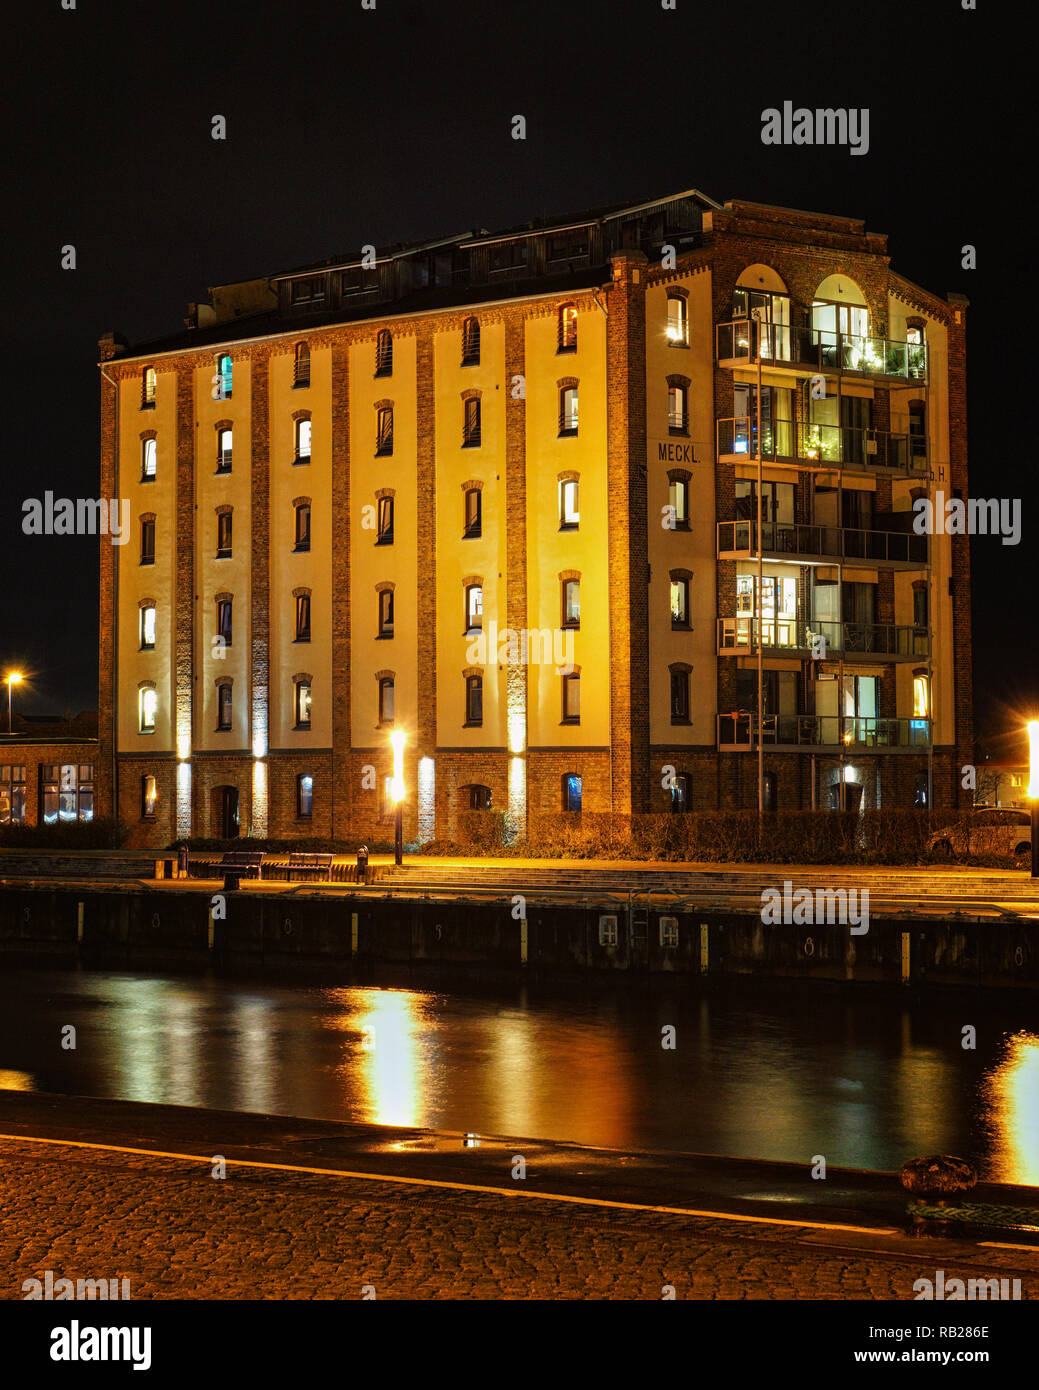 Old house in the harbor of Wismar at night. - Stock Image